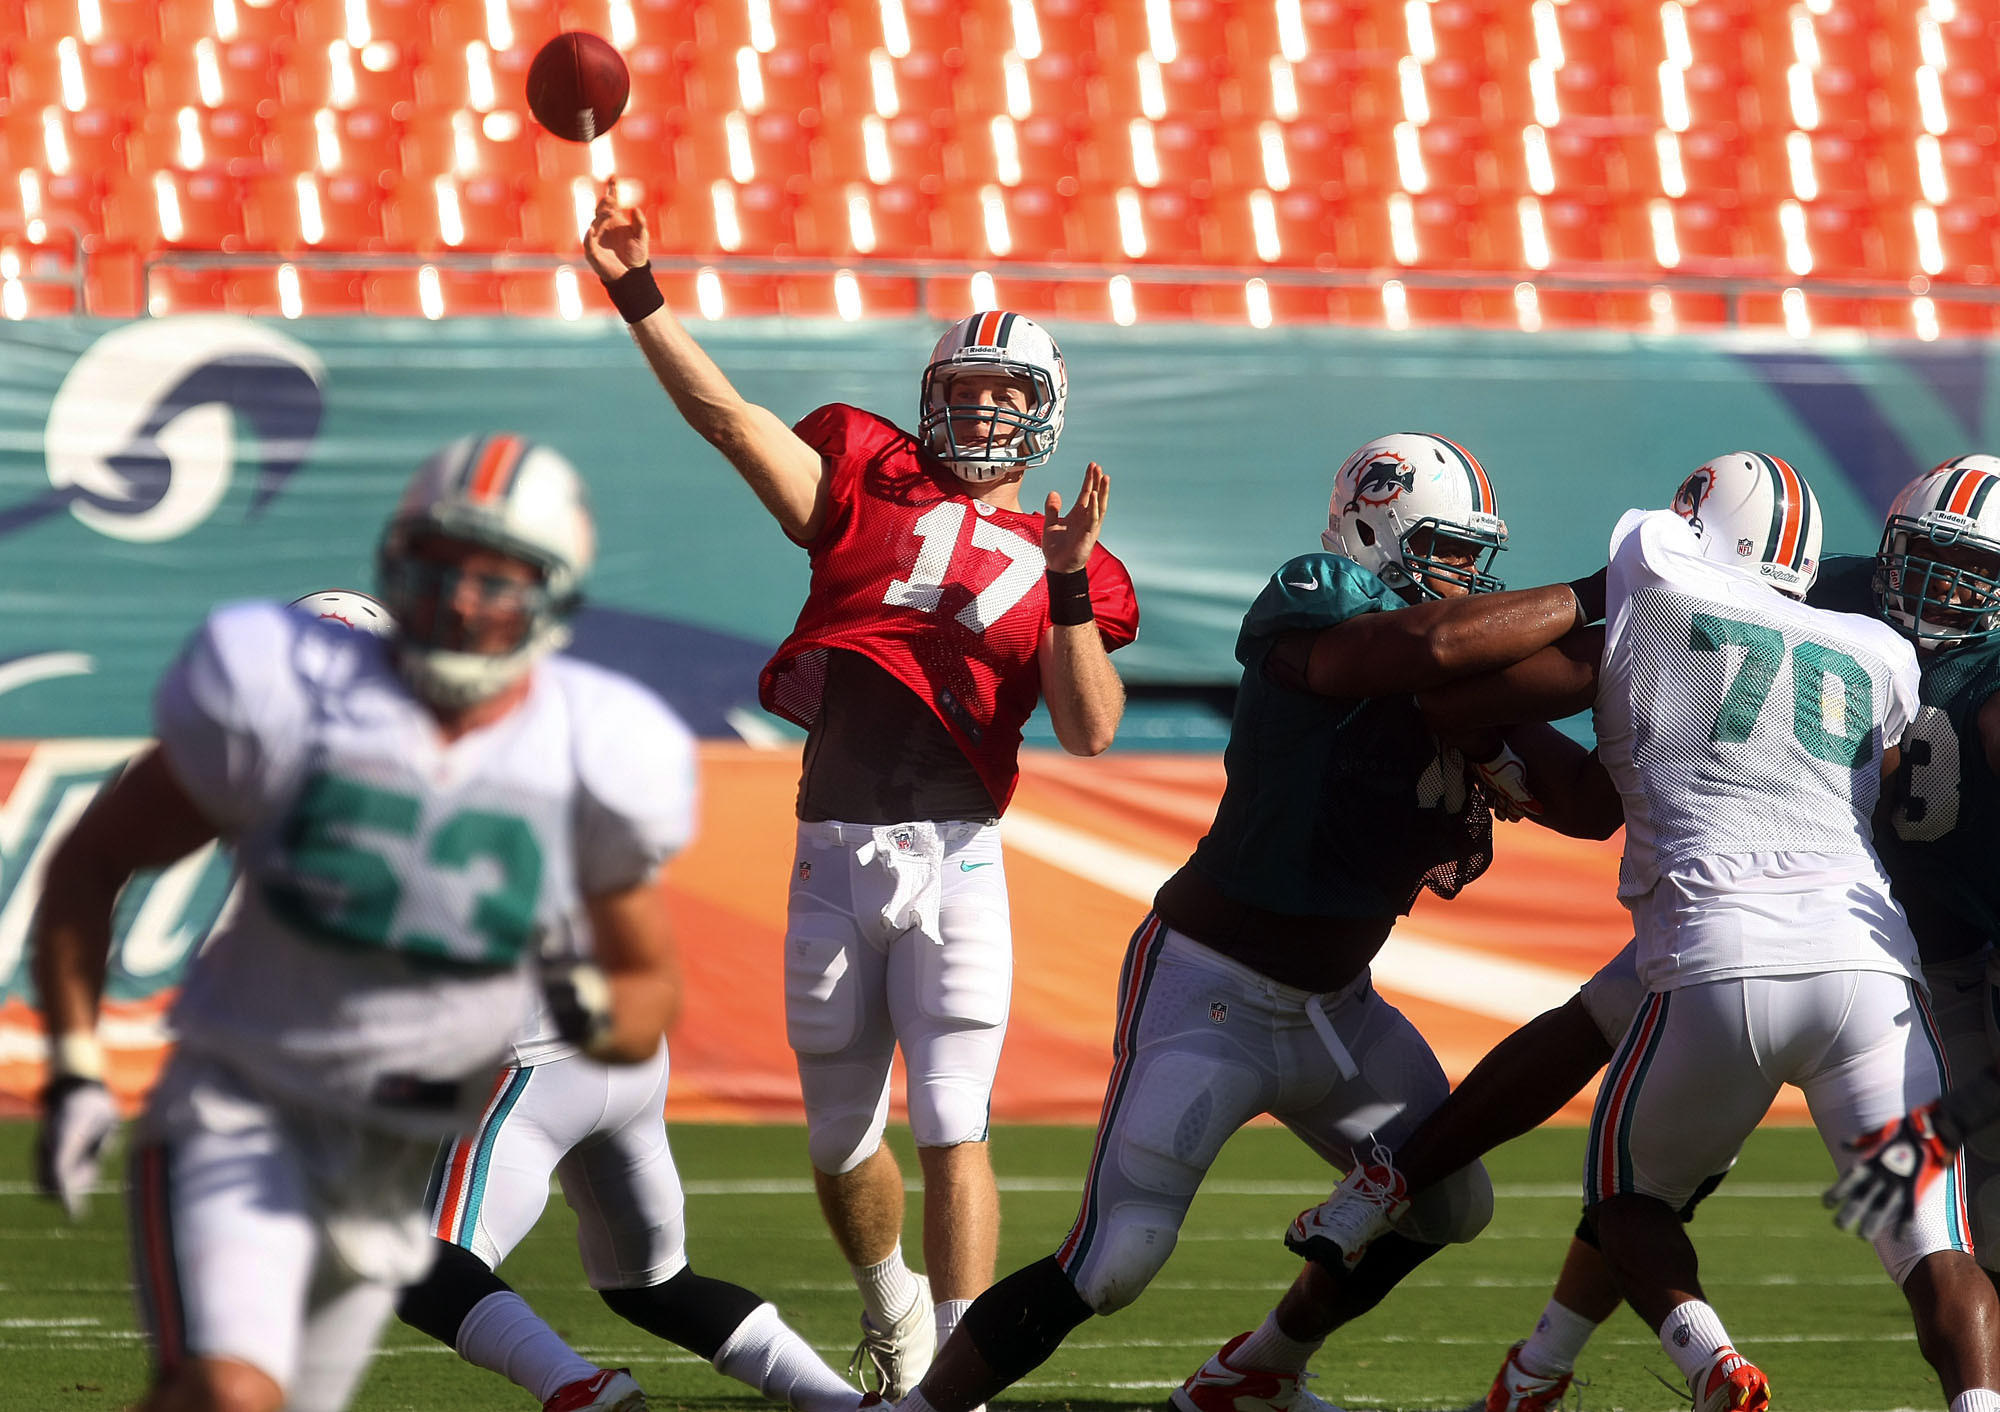 Fl-sp-dolphins-tannehill-weapons-20180815